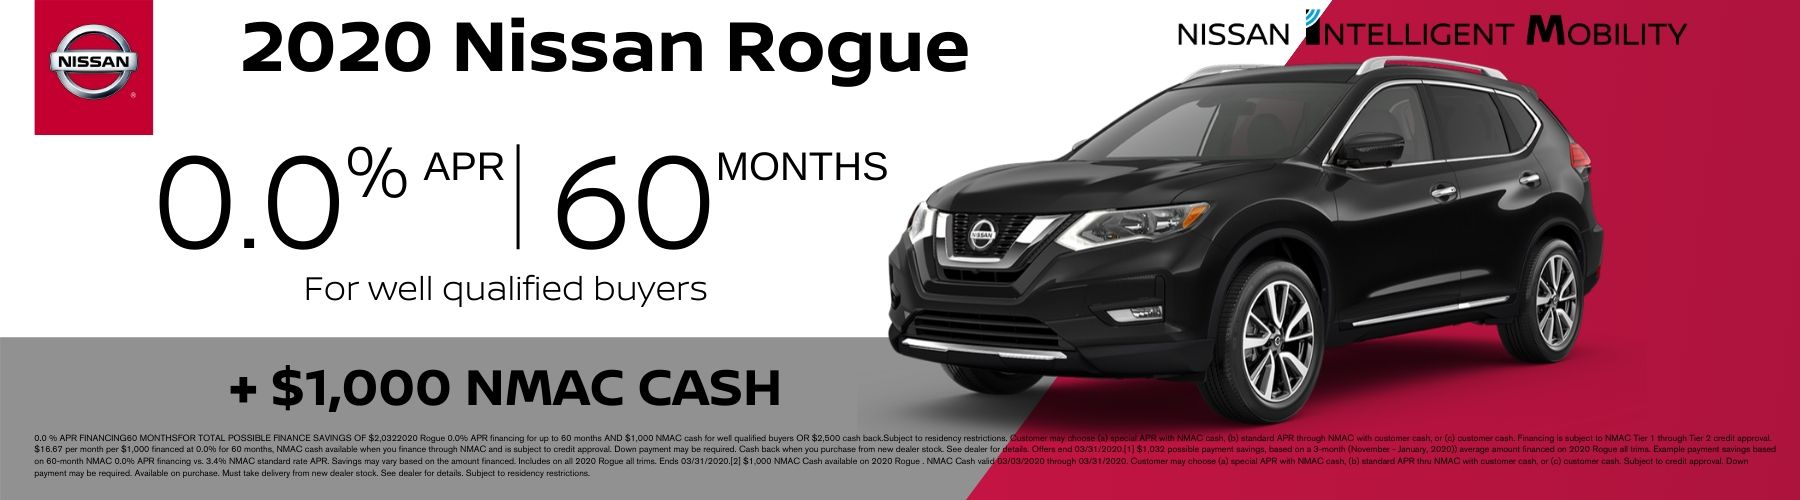 October Rogue Offer